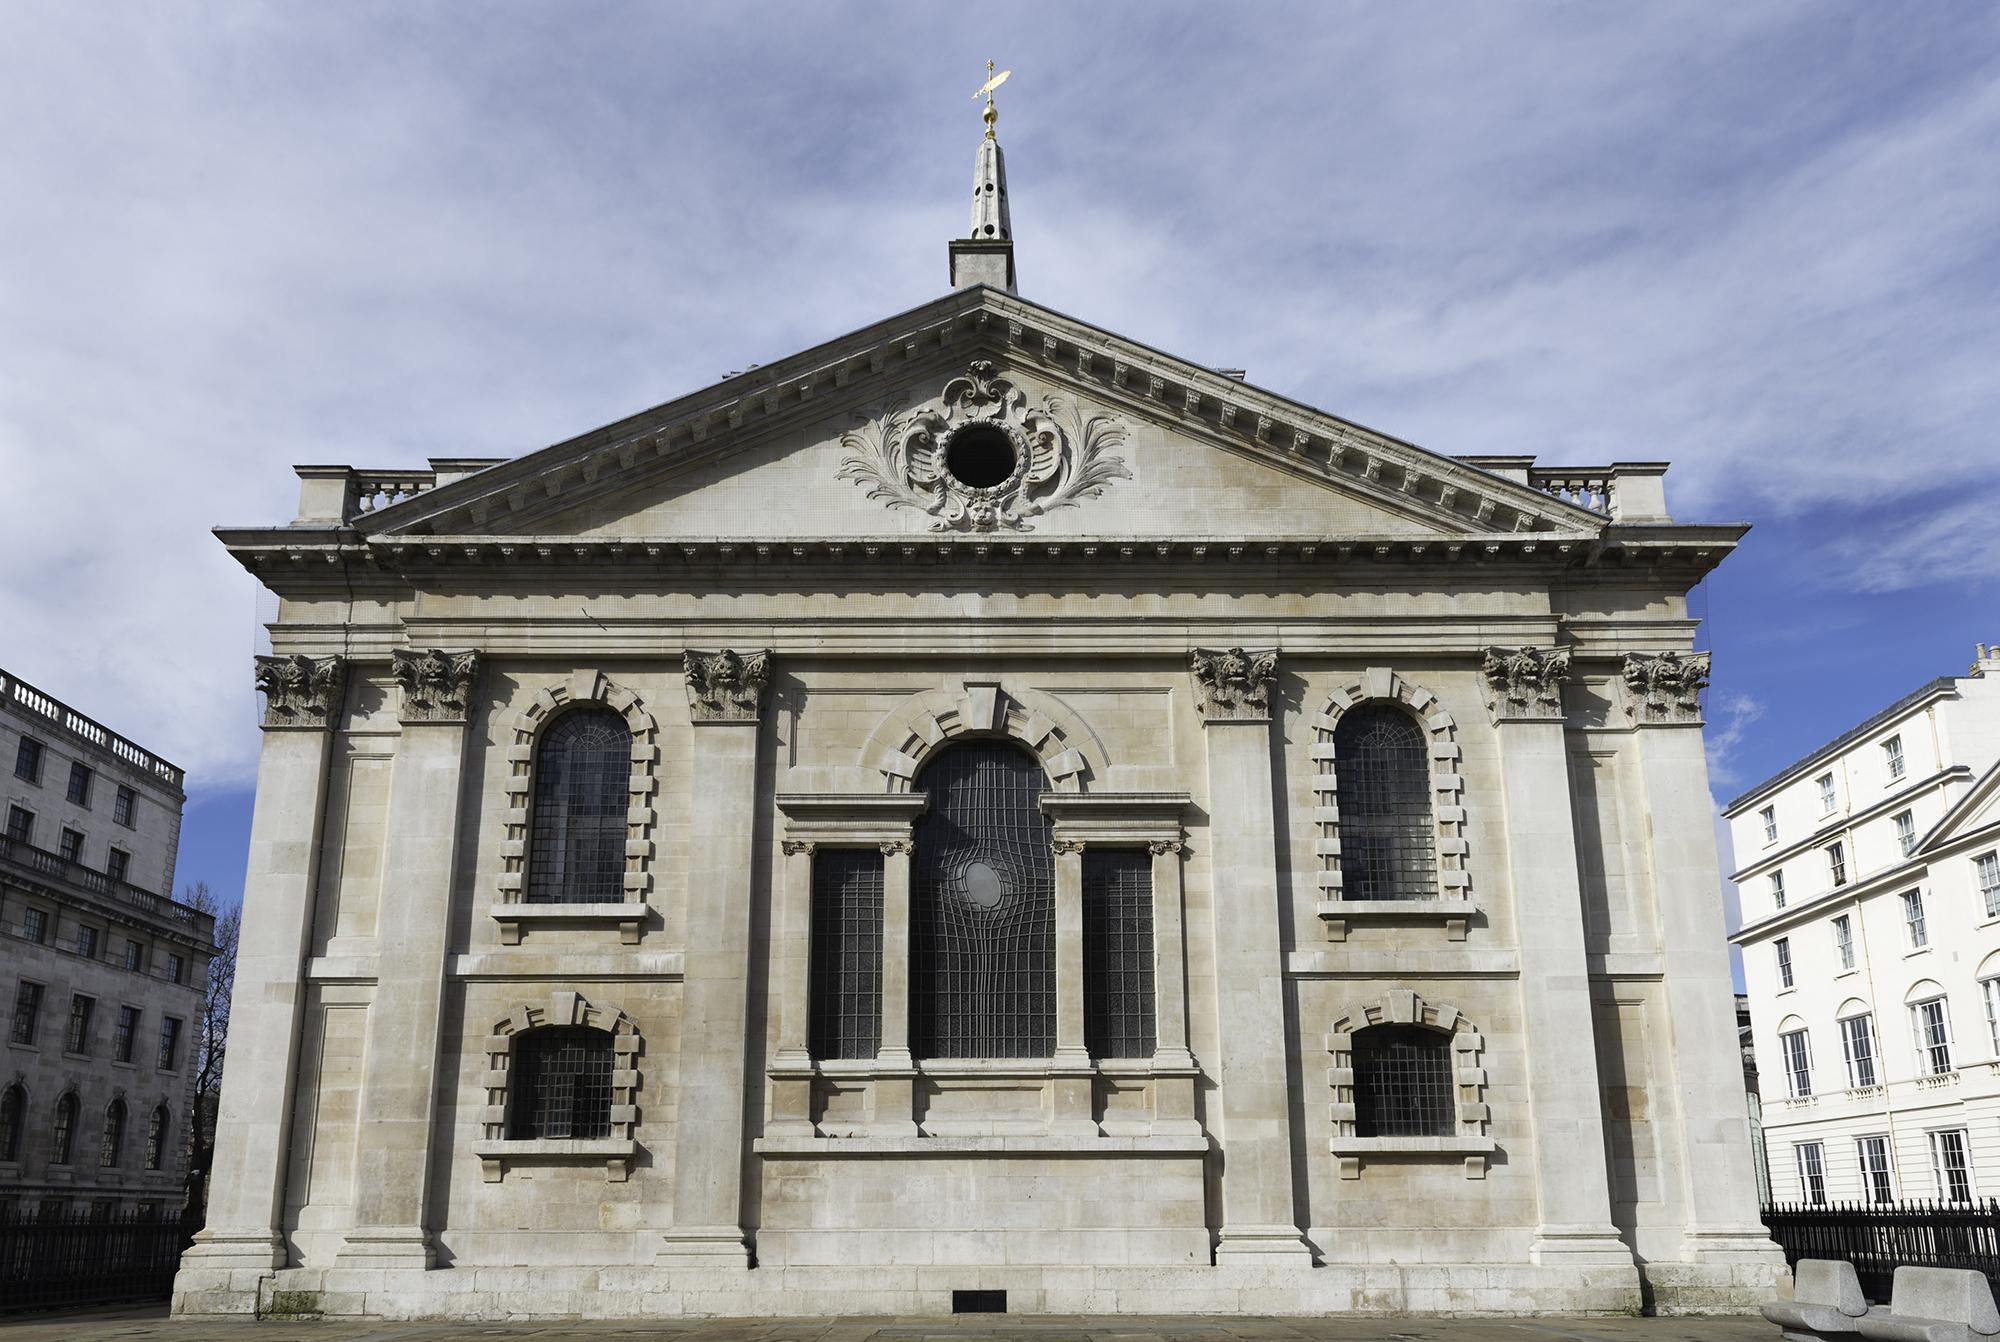 Arquitectura romana antigua en St Martin-in-the-Fields